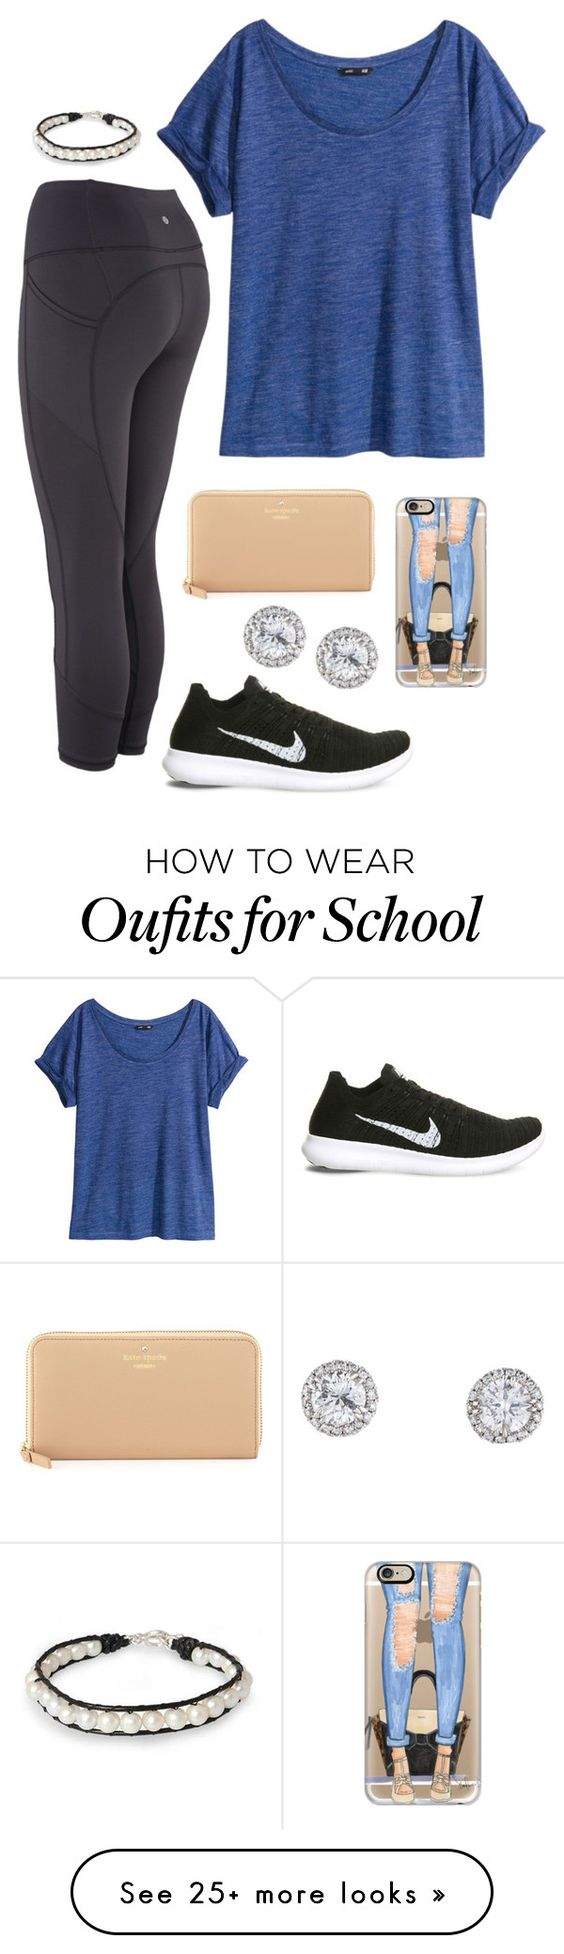 """School"" by classygrace on Polyvore featuring NIKE, H&M, NOVICA, Kate Spade, Casetify and gracesfavorites"